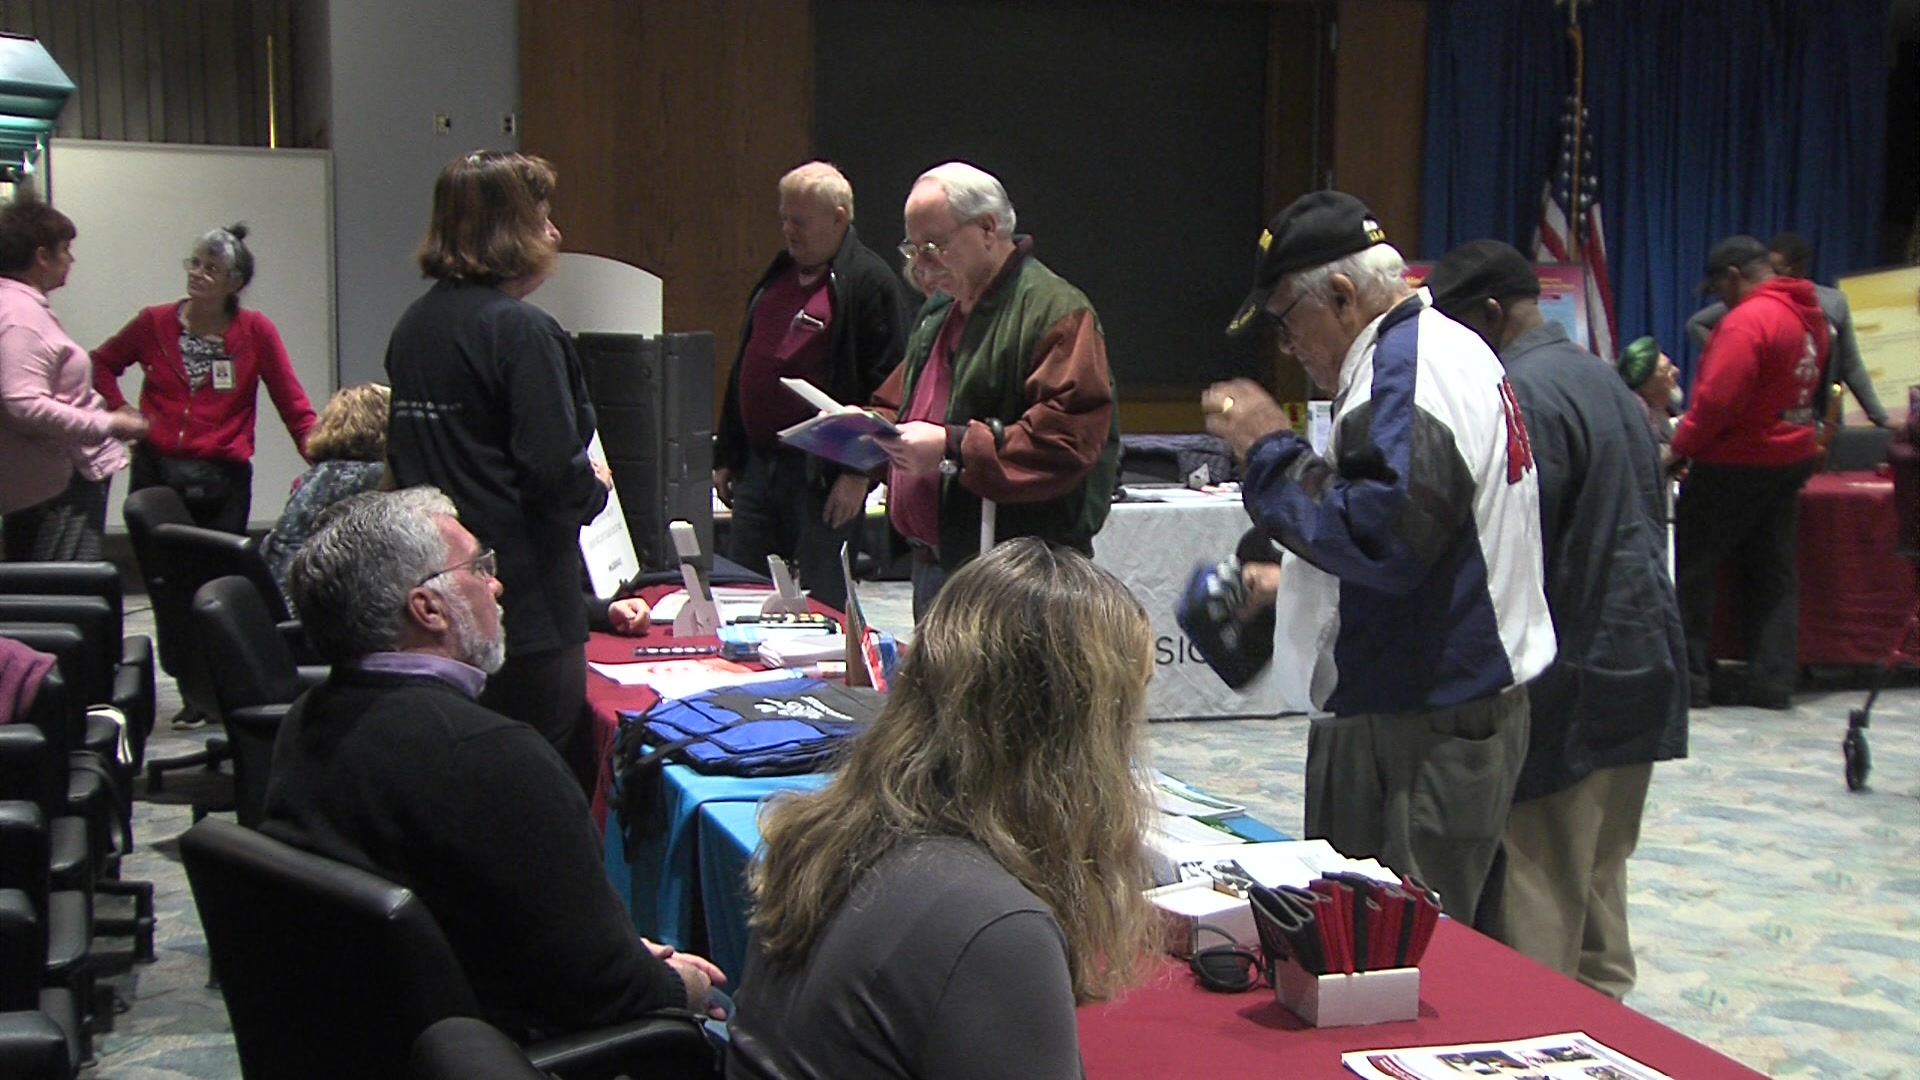 Milwaukee VA celebrates White Cane Safety Day with services for visually impaired veterans